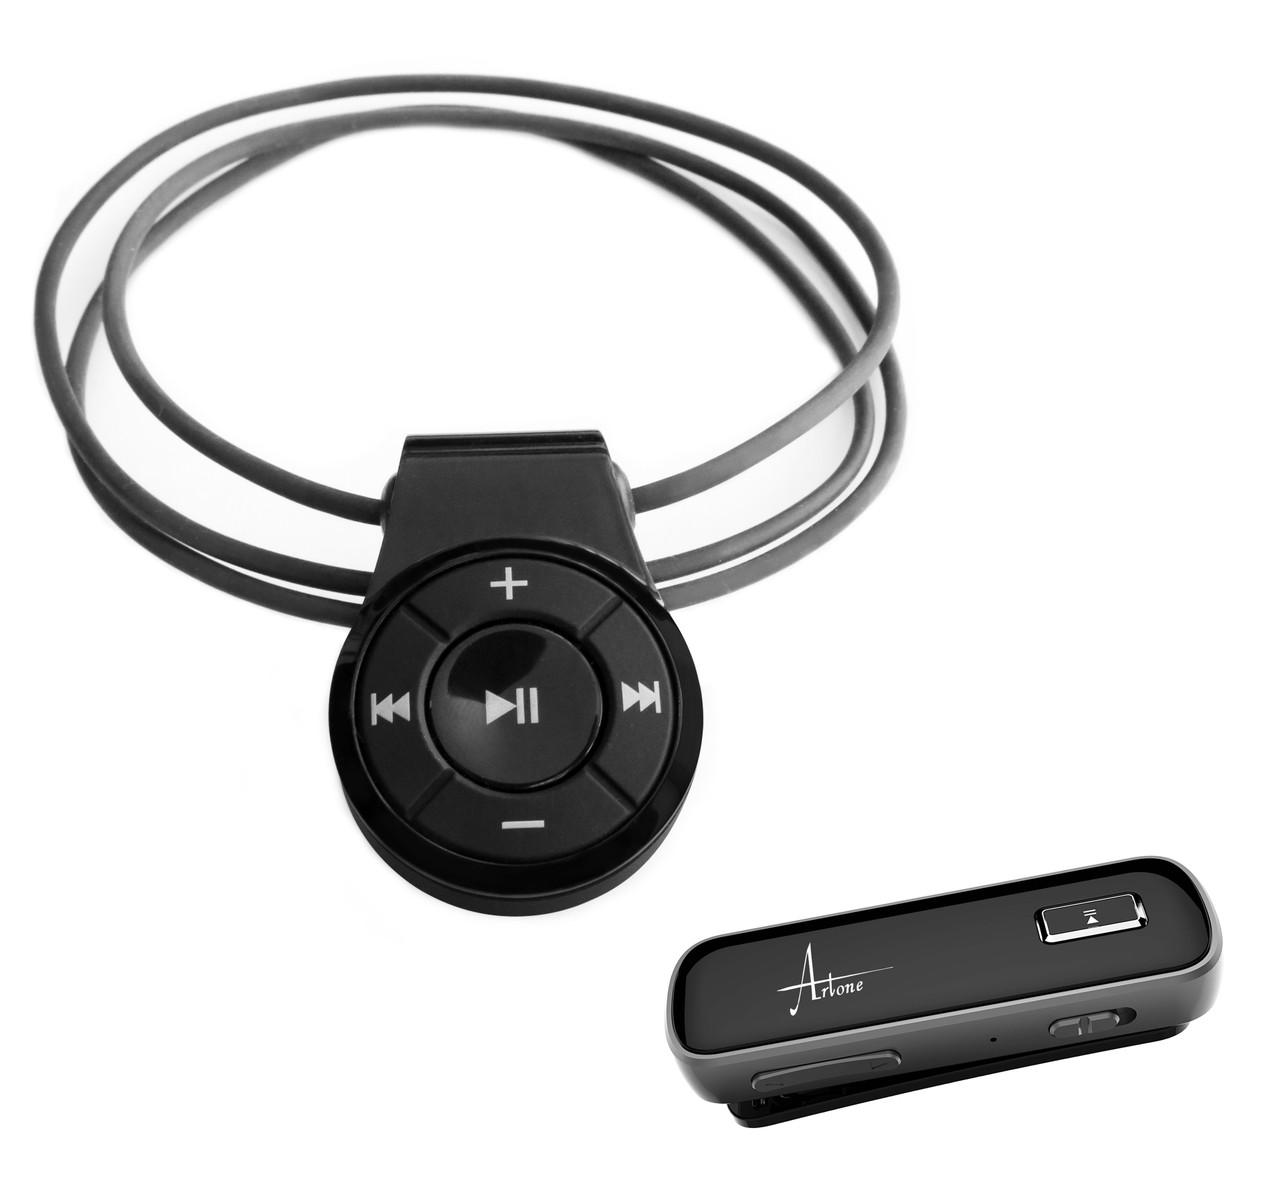 Artone 3 MAXC Inductive Bluetooth Neckloop and Mic Combo